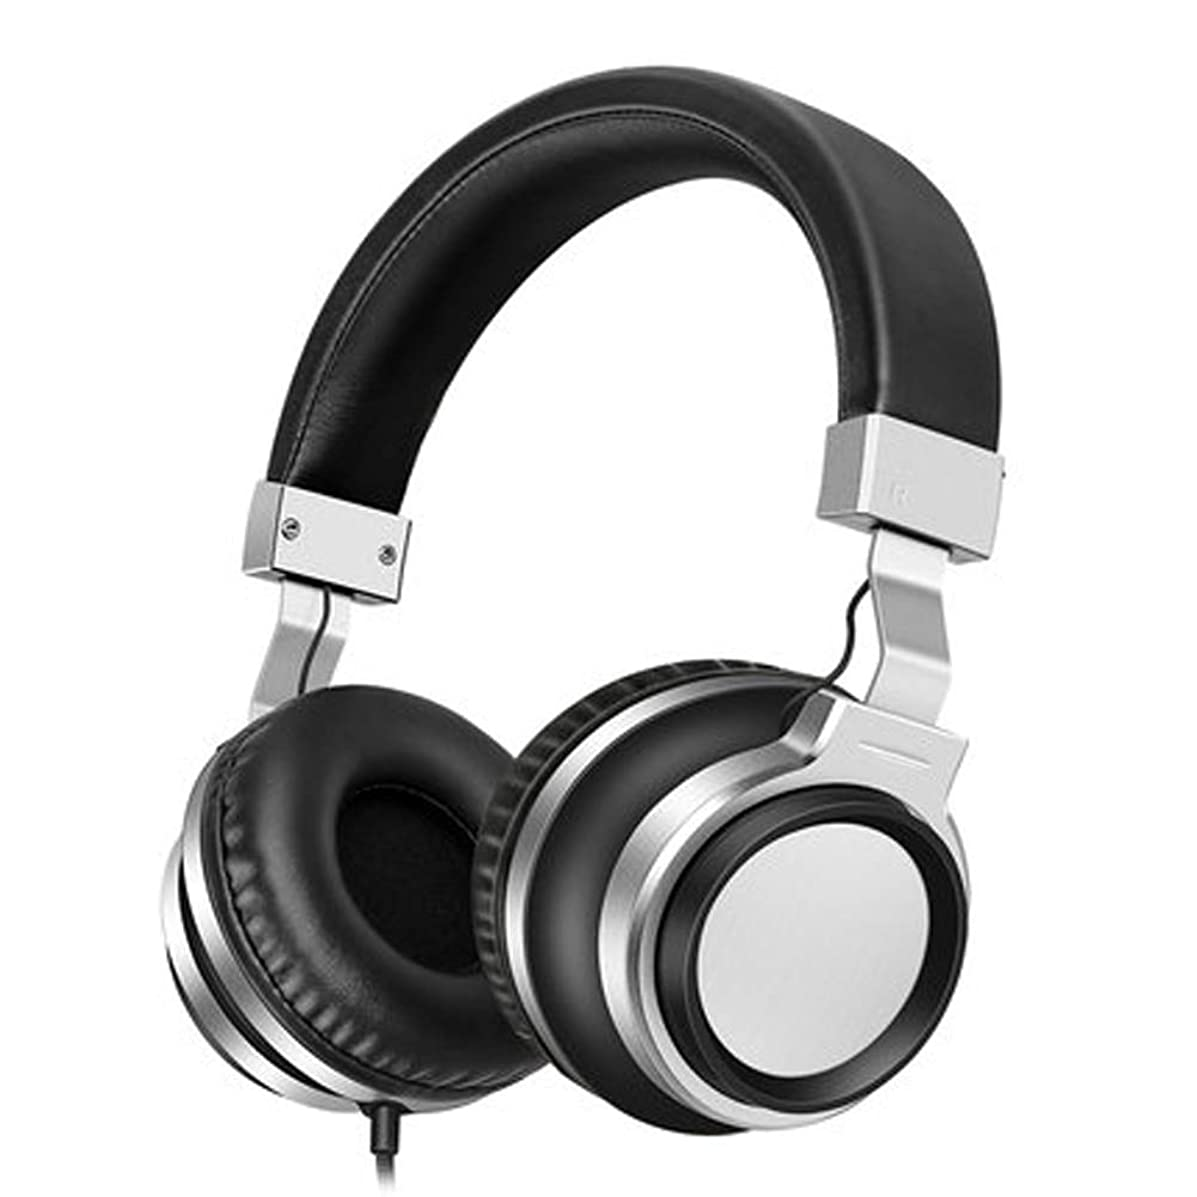 PXYUAN Gaming Headset PS4 Headset, Xbox One Headset with Noise Canceling Mic, Wired Earphone Head-Mounted subwoofer Mobile Computer Universal line Control Boys and Girls Cute Fashion Headphones-Black